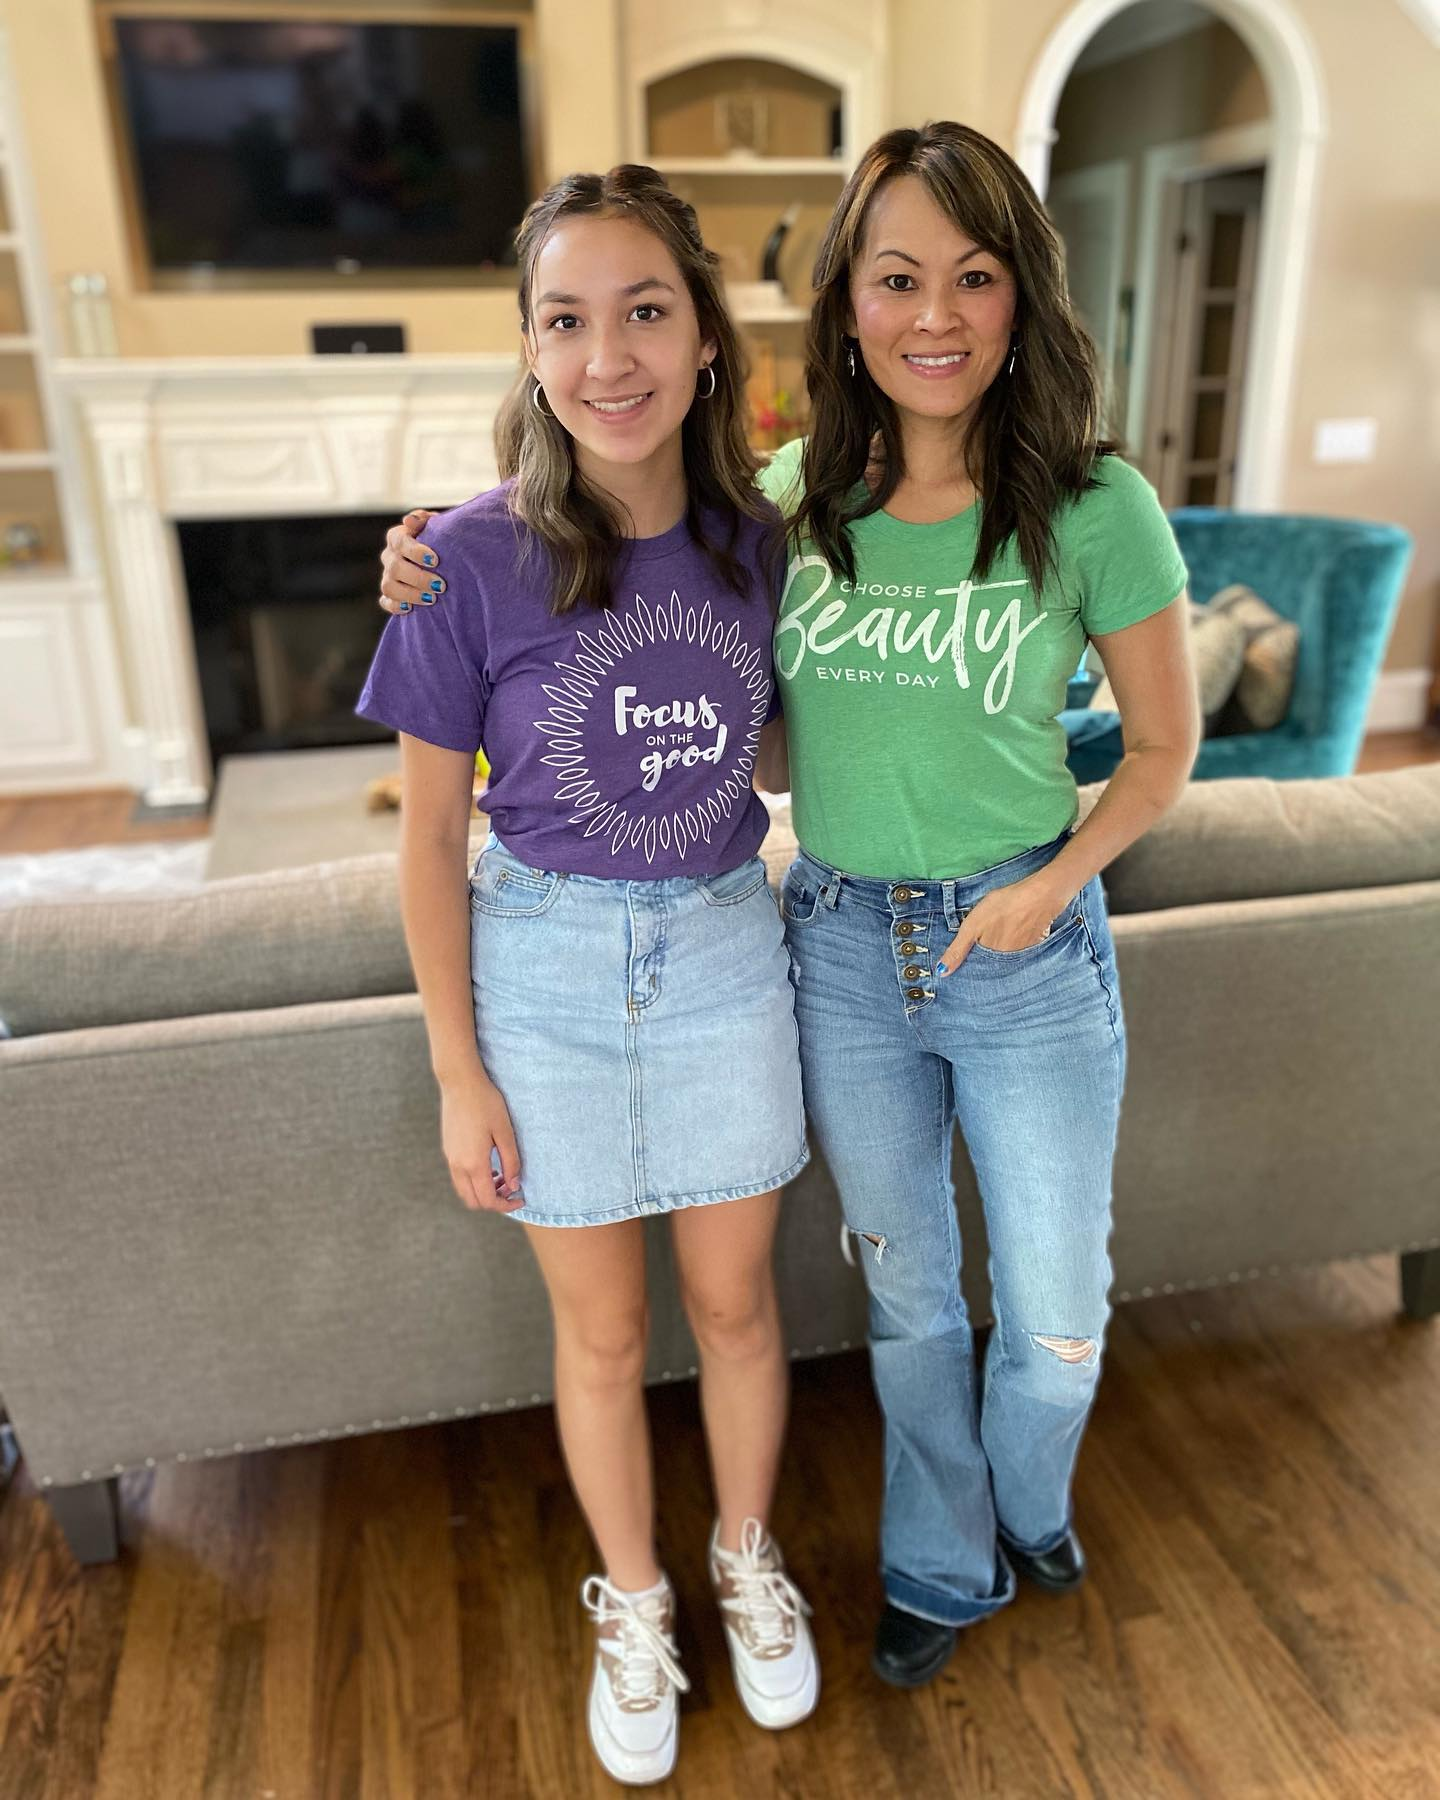 Check out this mom and daughter dynamic duo in @ichoose.beauty tees! Ava (on the left) is wearing our Unisex tee which has a looser fit; Tran has on our Women's tee which is form-fitting. #optionsforall 😀😀 Thank you so much for your support @onlocationwithtran! 5% of net proceeds goes to @mentalhealthamerica.